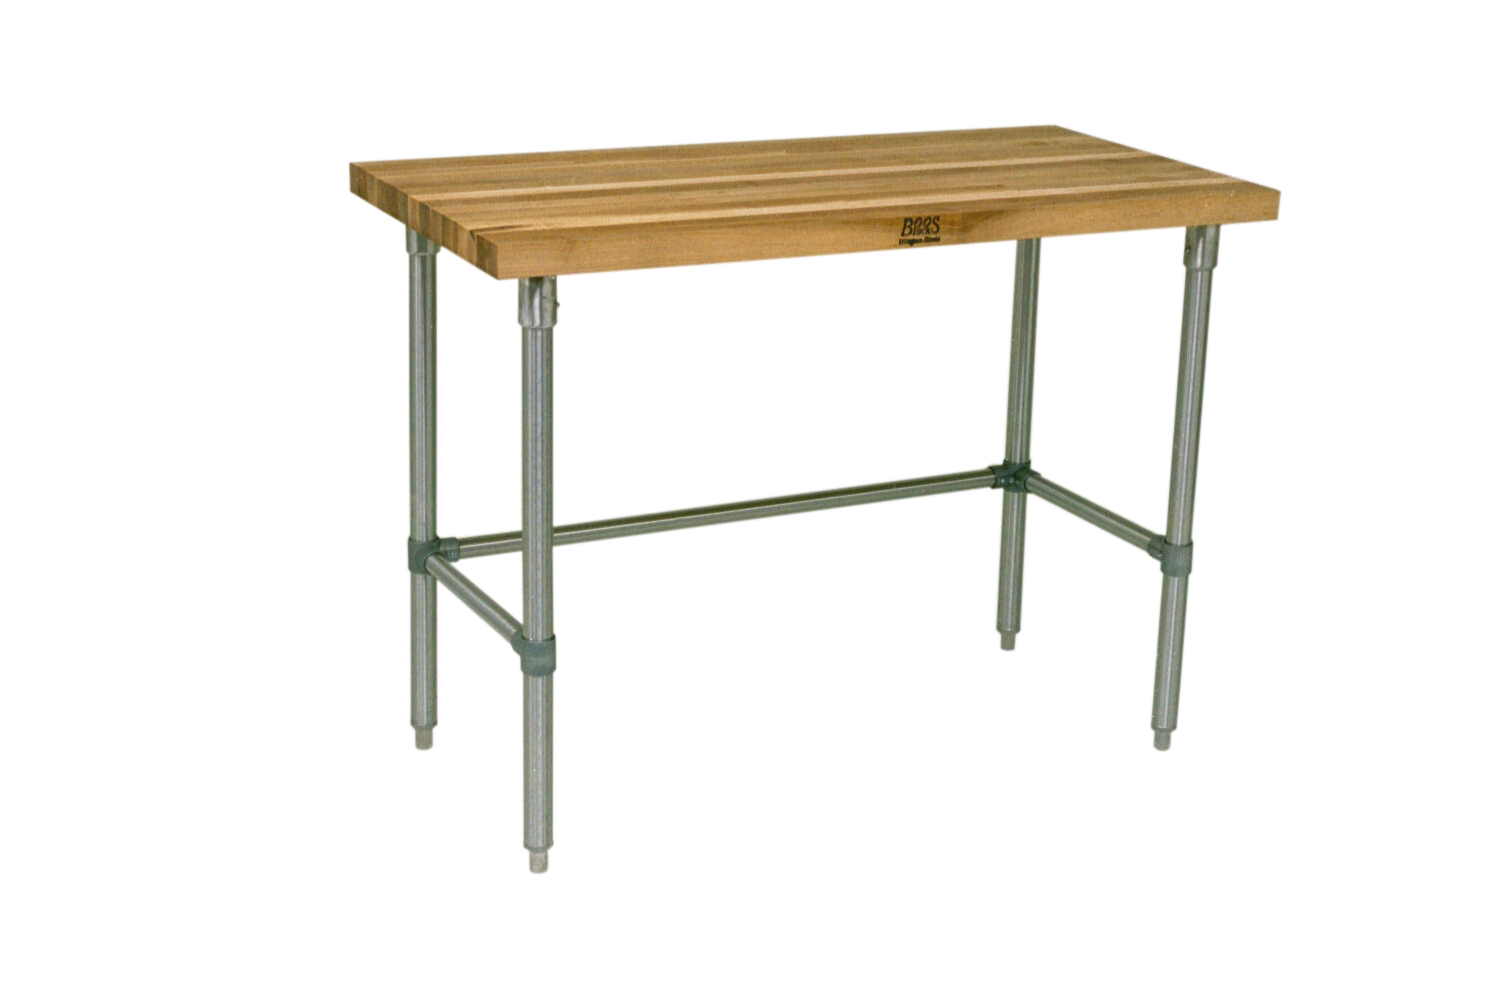 John Boos Thick Maple Top Work Table on Adjustable Galvanized Base, 72 x 30 Inch